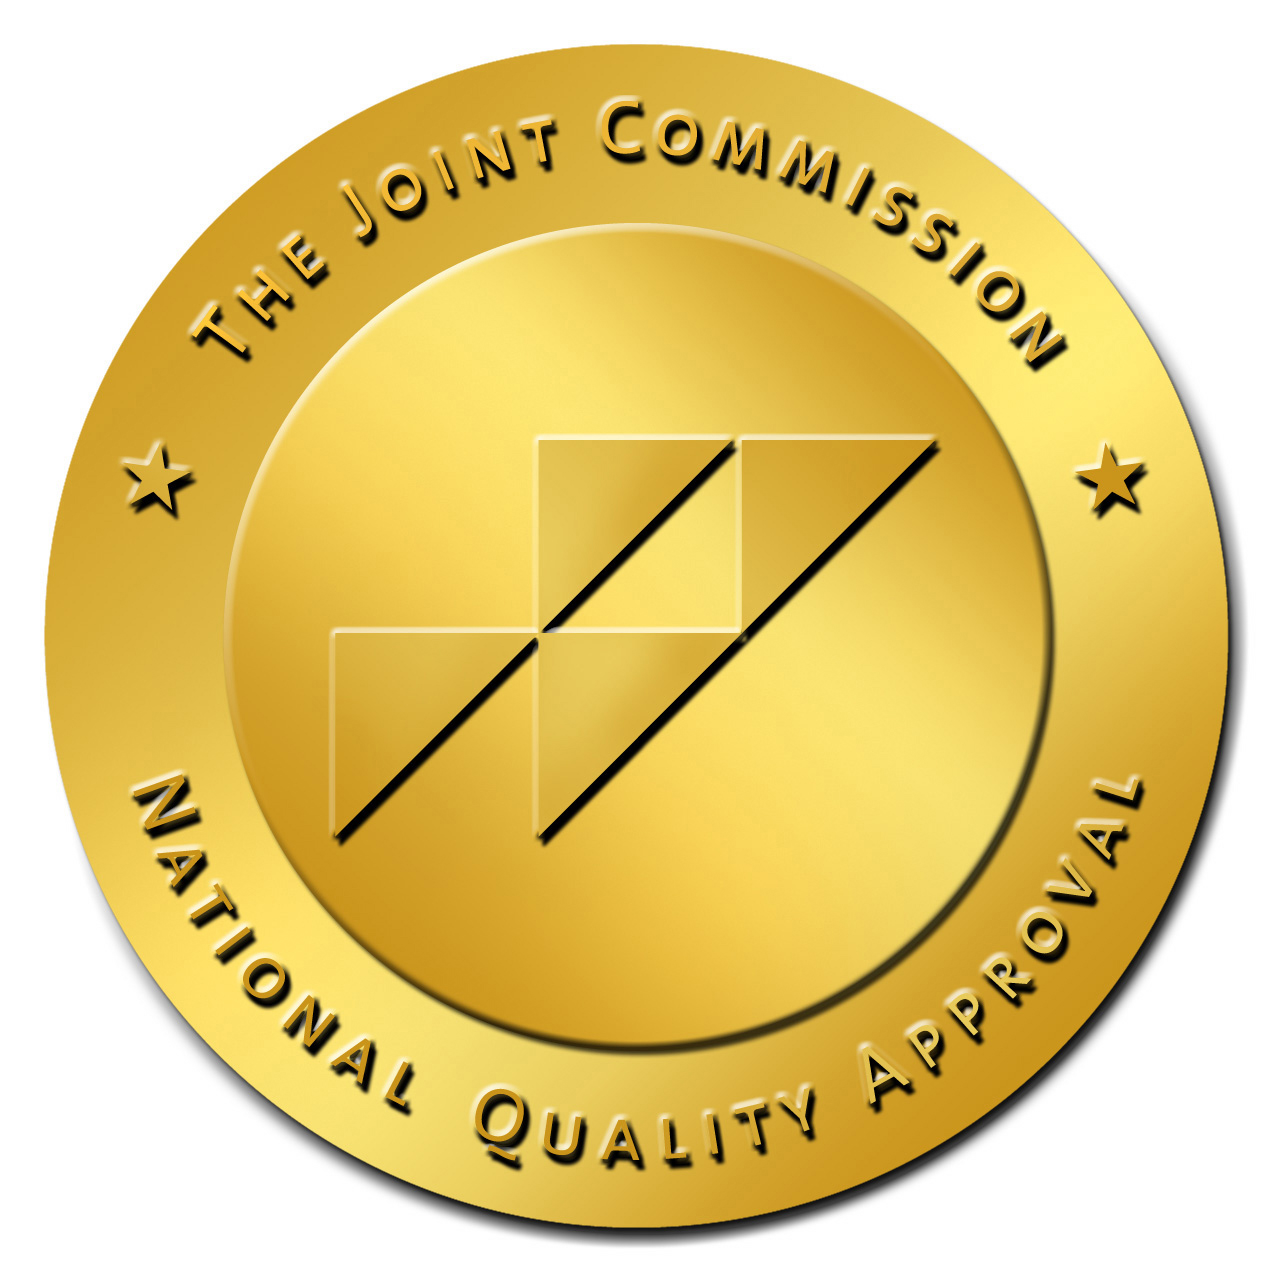 The Joint Commission's Gold Seal of Approval logo